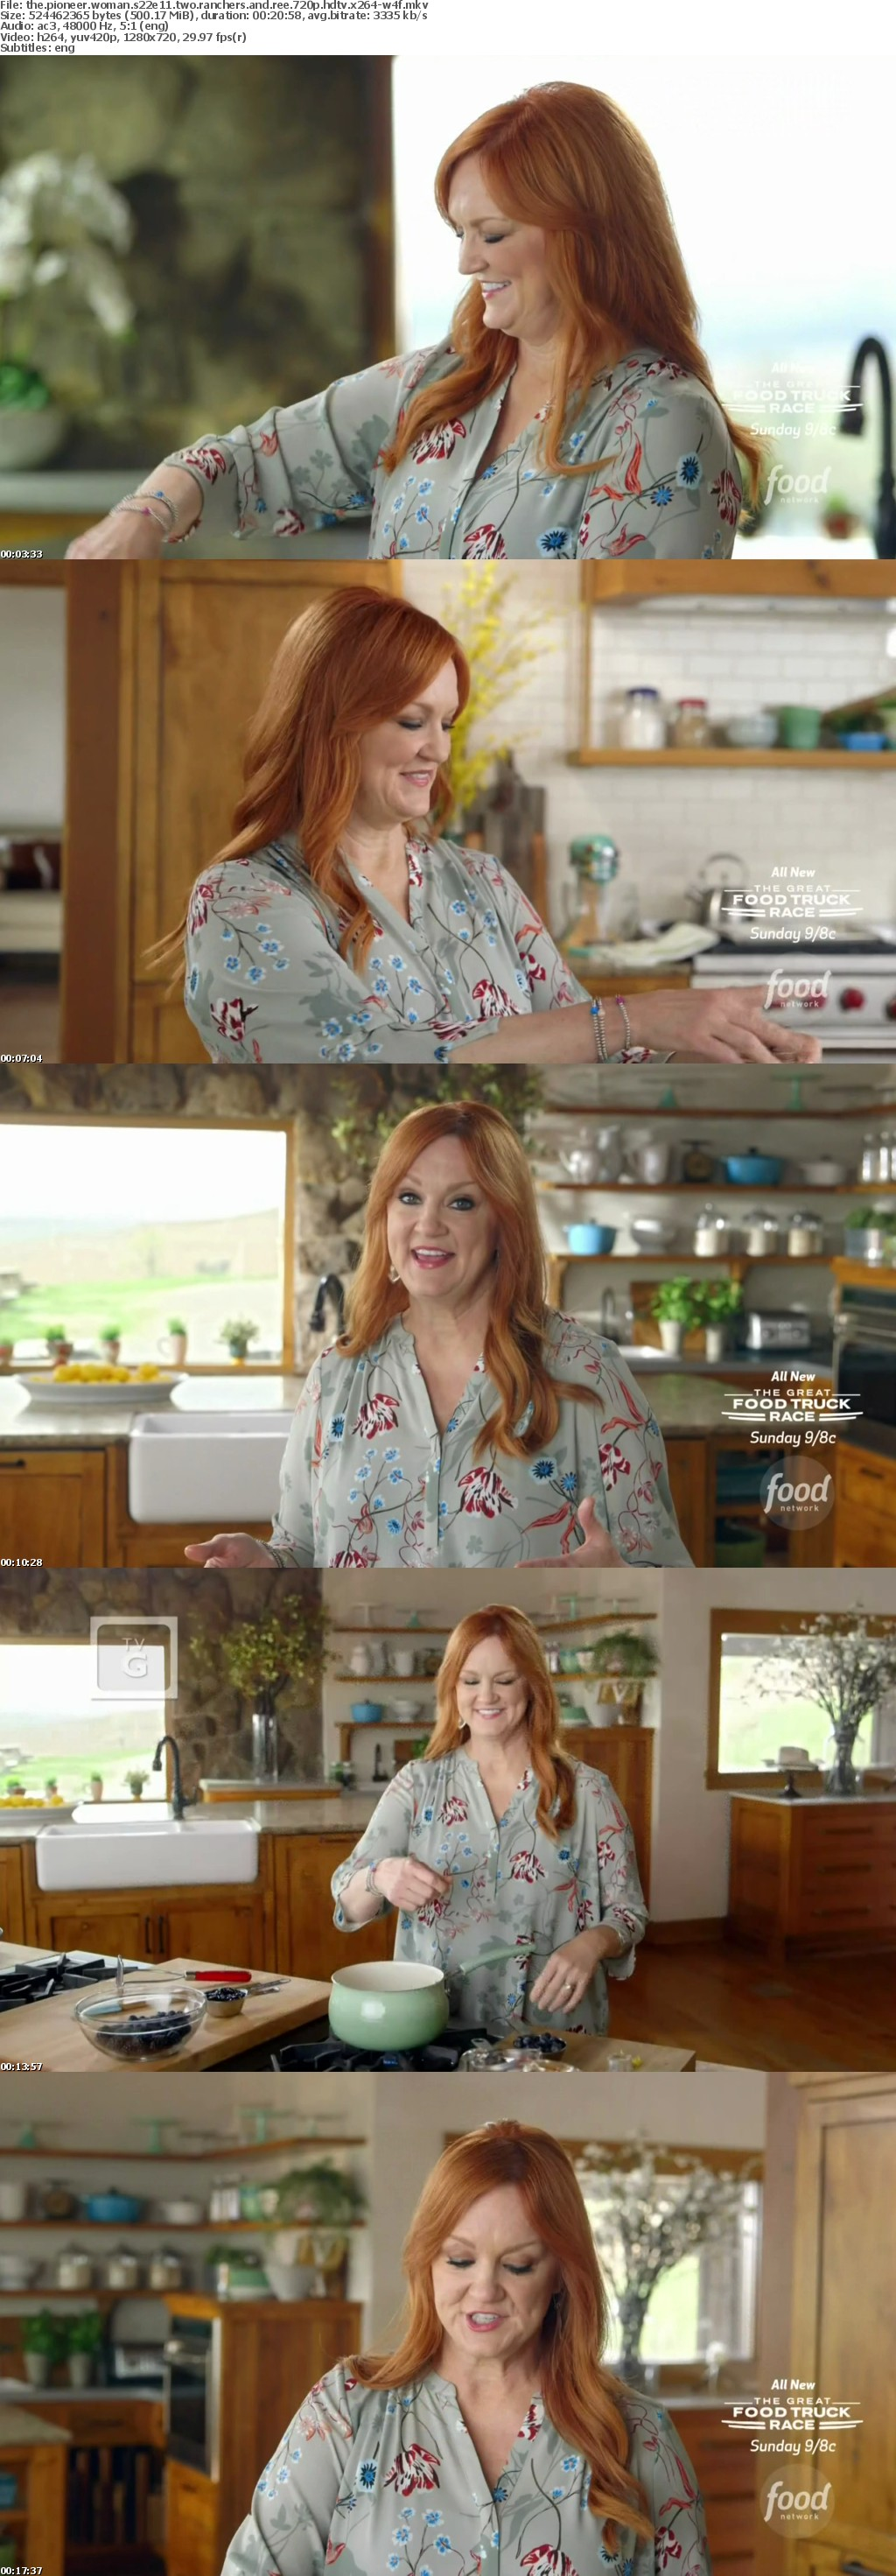 The Pioneer Woman S22E11 Two Ranchers and Ree 720p HDTV x264-W4F